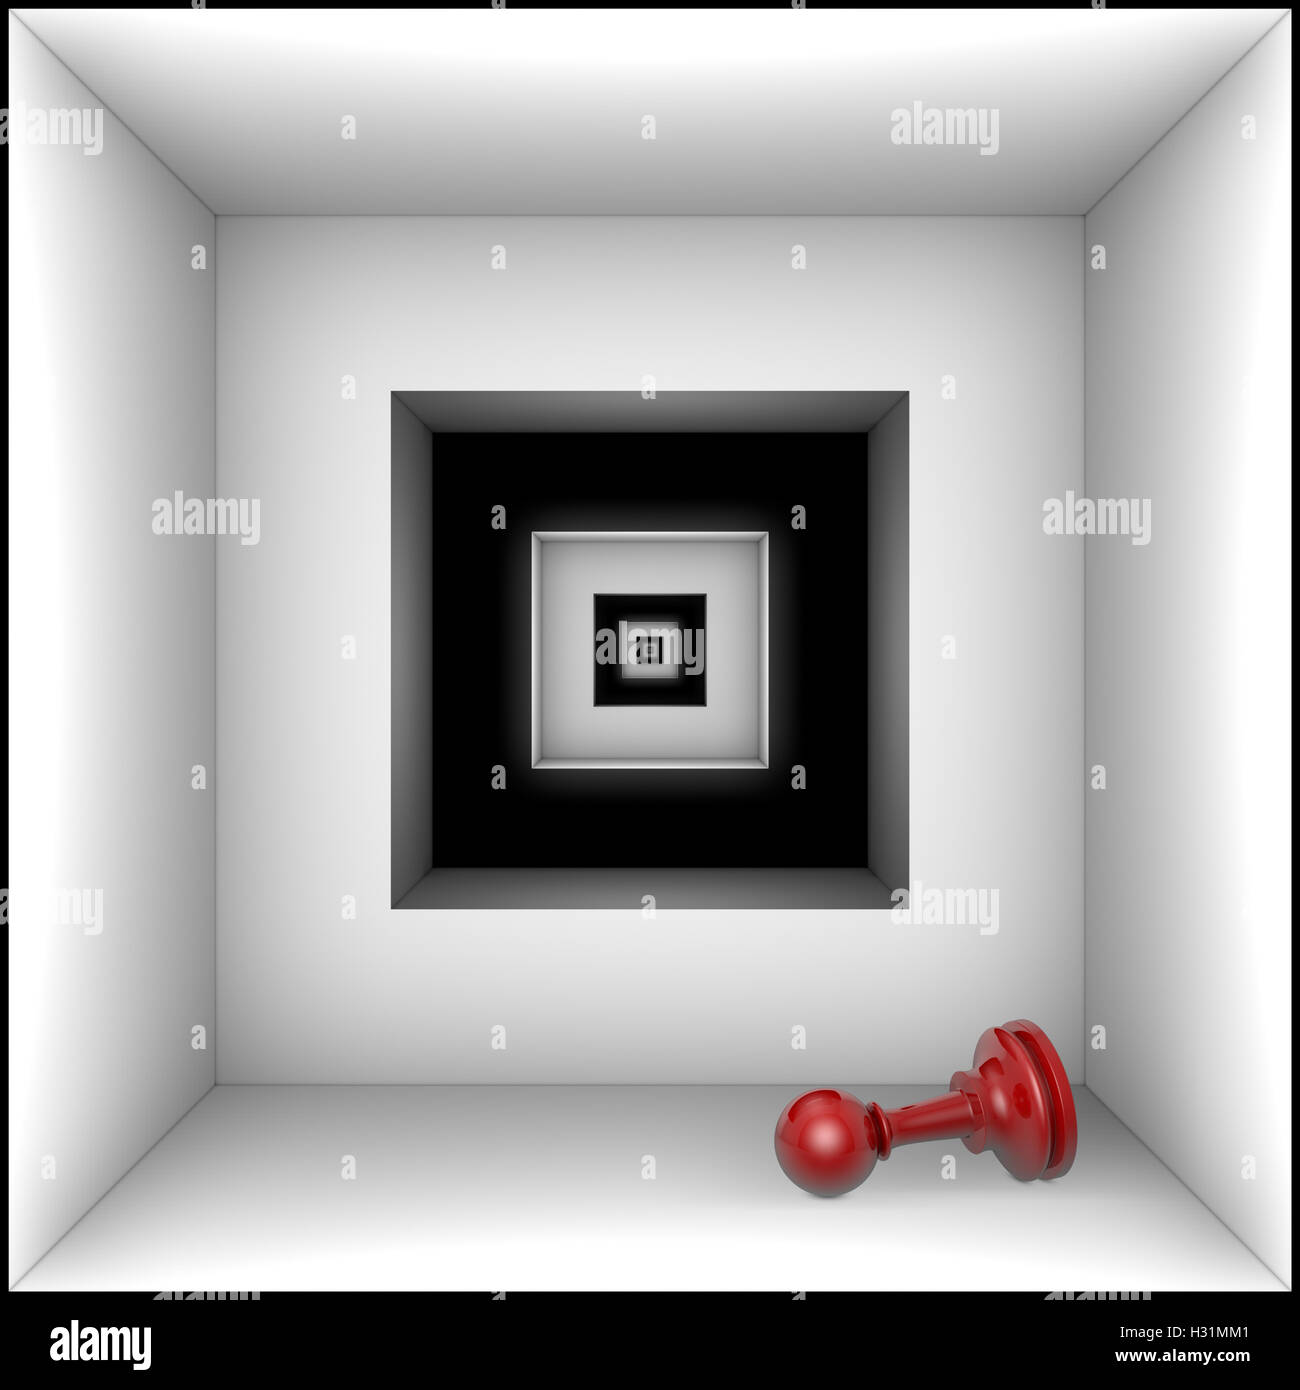 Red pawn in black and white tunnel. The space and infinity. 3D illustration rendering. - Stock Image